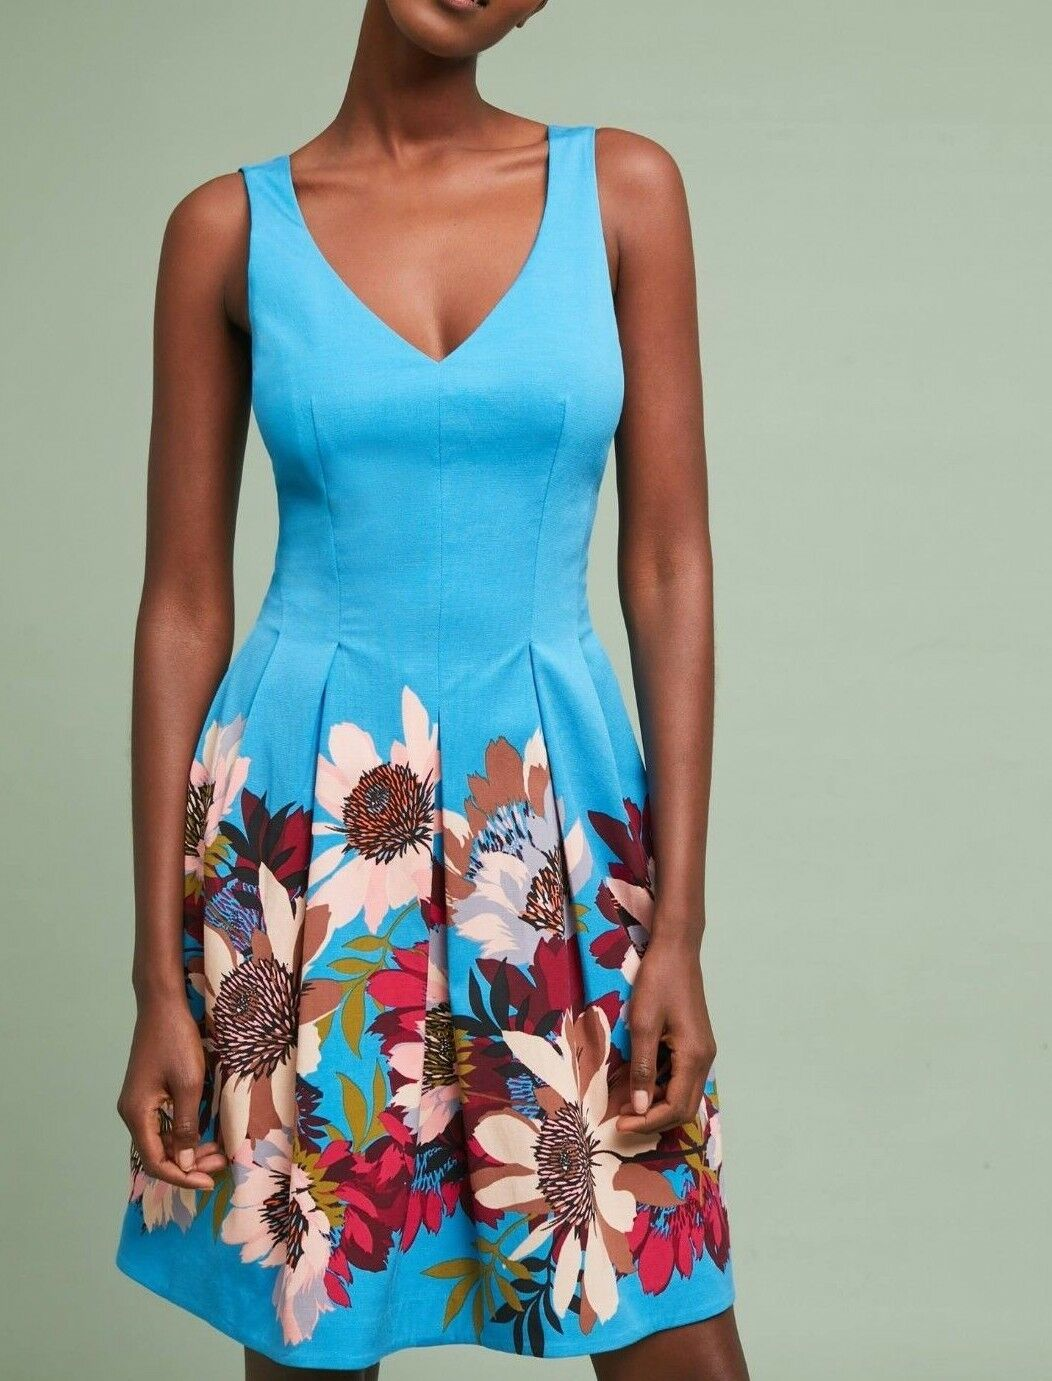 Anthropologie Spring Daisy Dress by Tracy Reese  - NWT